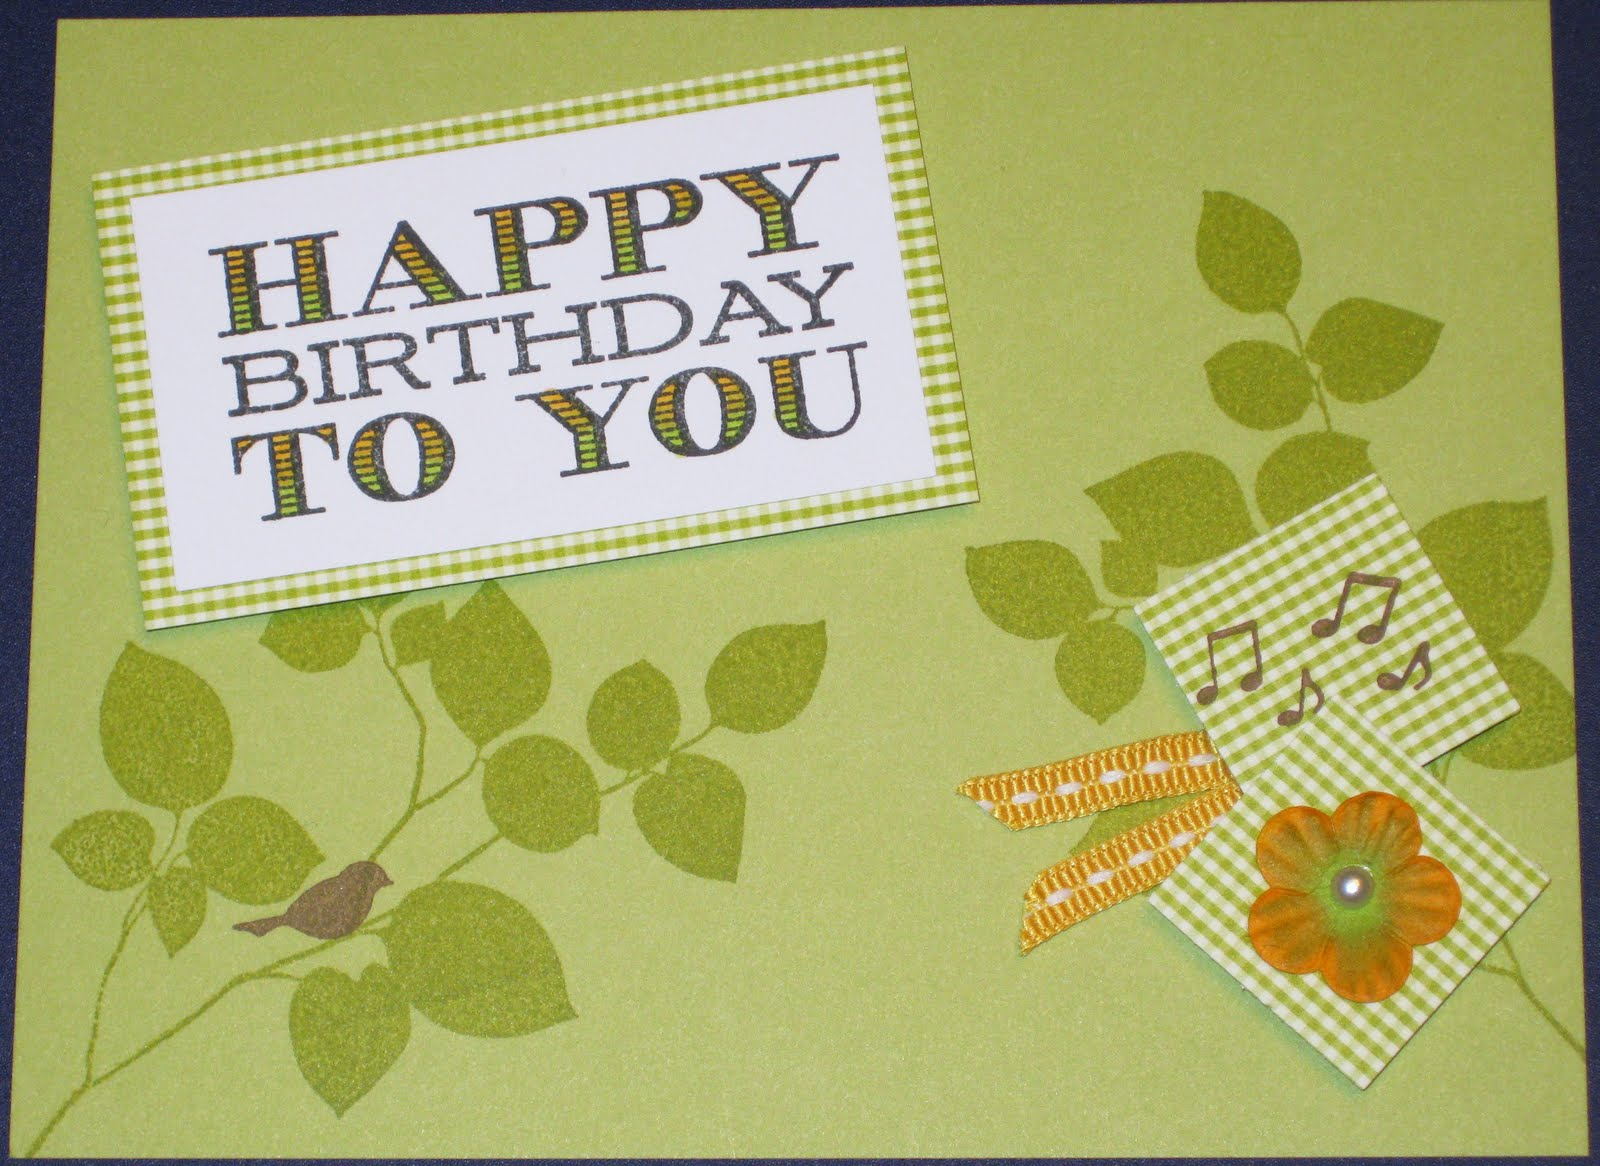 Funny Adult Birthday Wishes For Women A song, birthday greetings